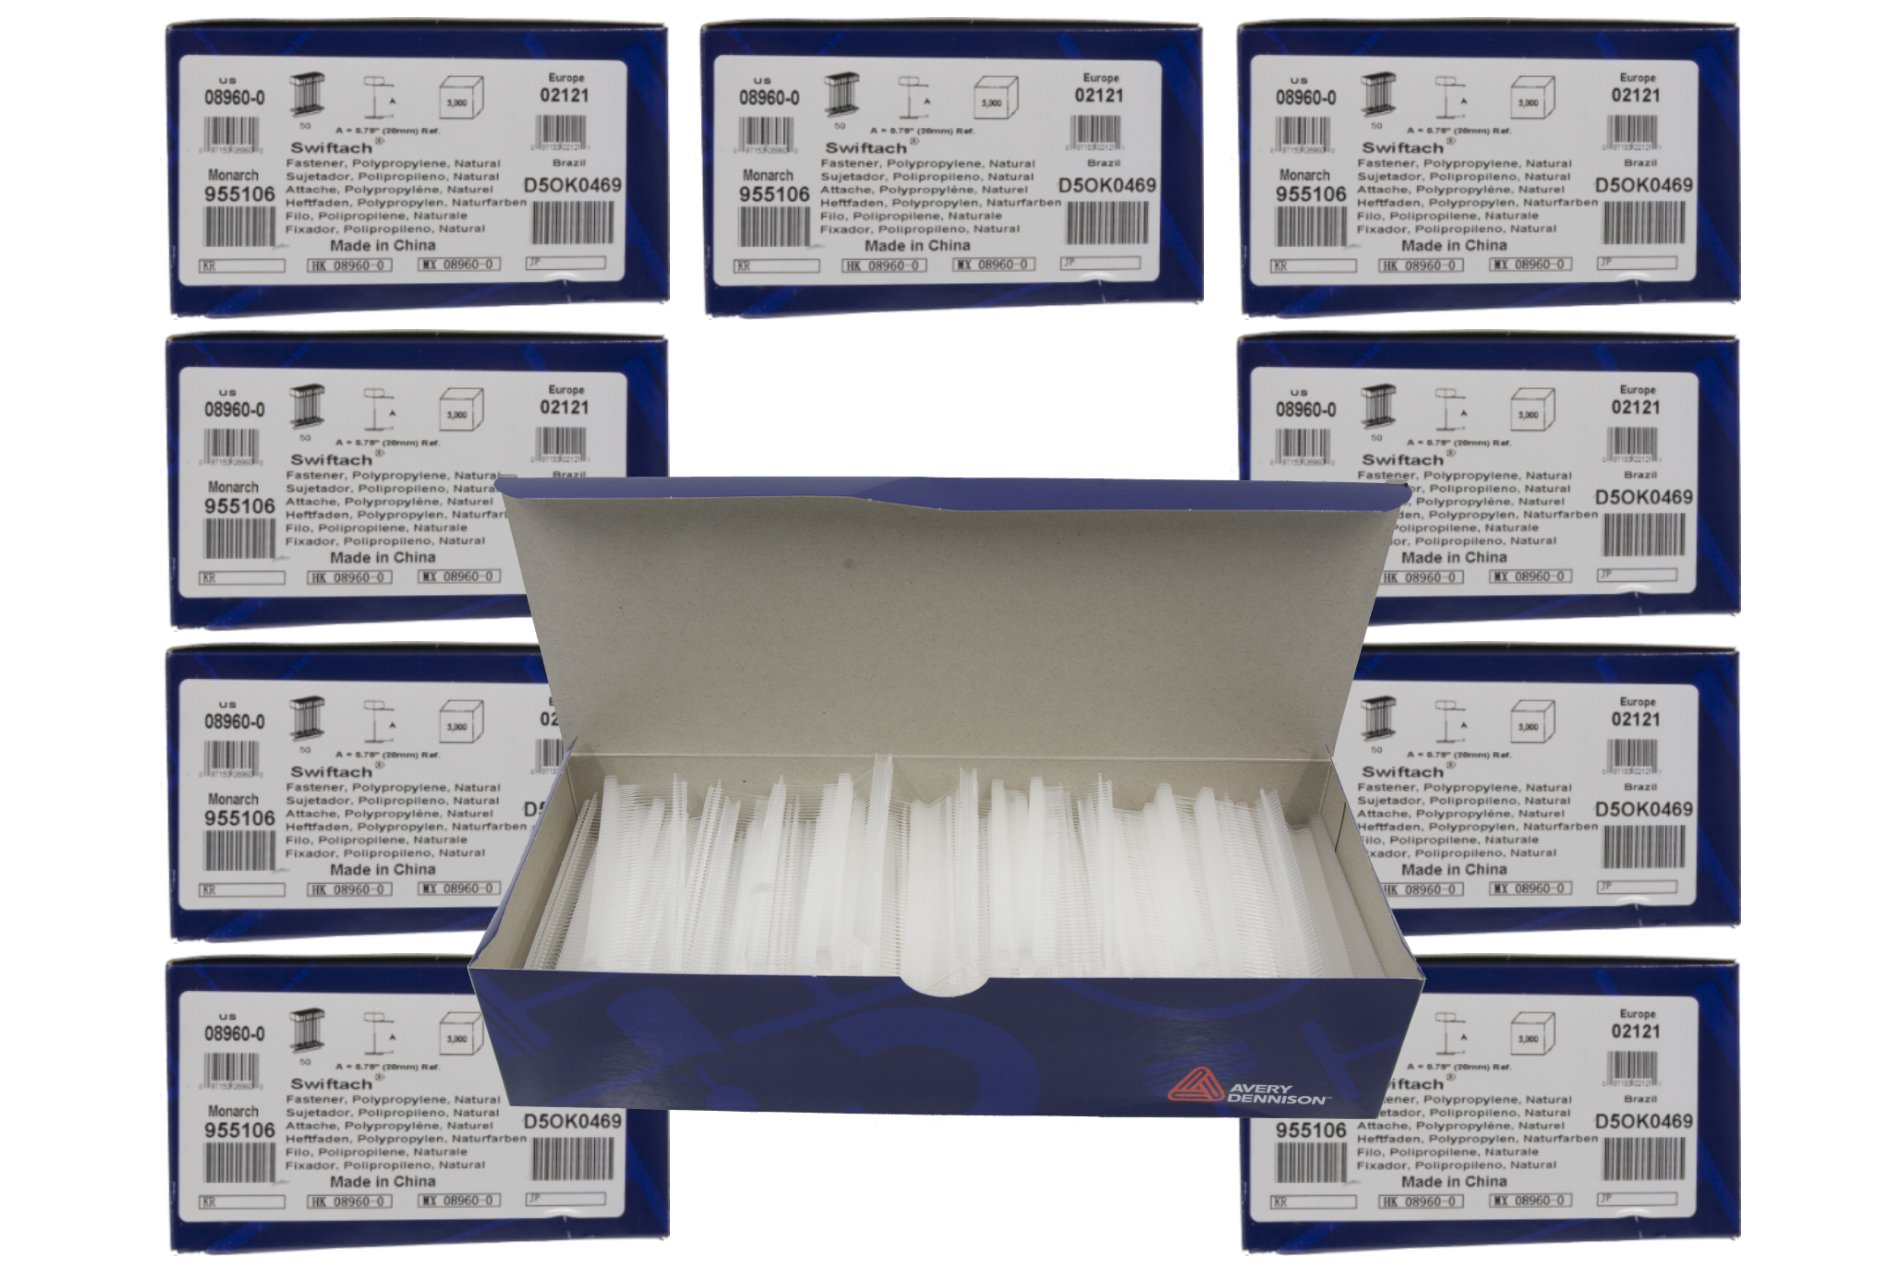 10-Pack of Avery Dennison 1'' Swiftach Tagging Gun Barbs / Fasteners - 5,000 Fasteners Per Box = 50,000 Fasteners - Genuine Avery Dennison # 08960 by Avery Dennison